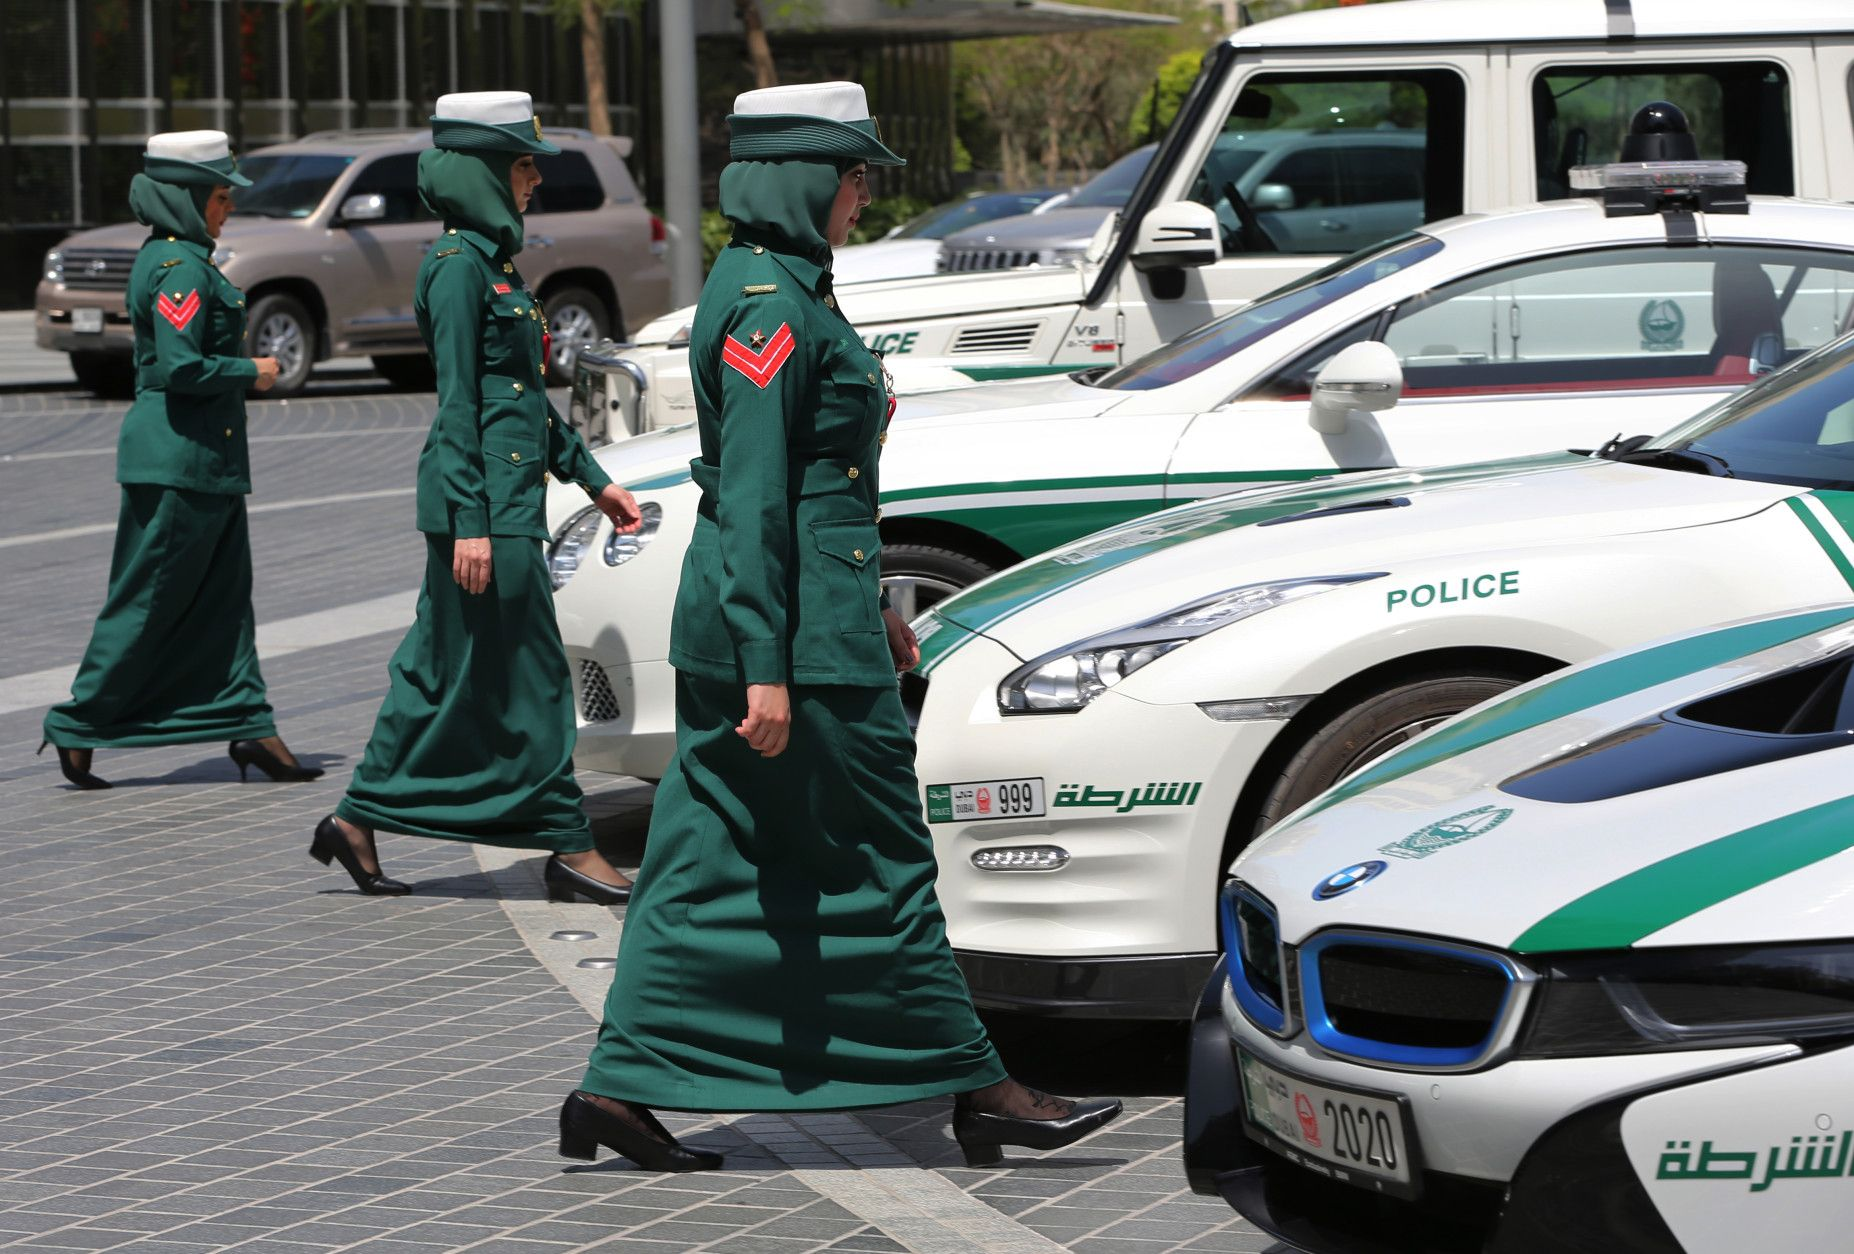 Dubai Women Police Squad Dubai, Police, Sports cars luxury